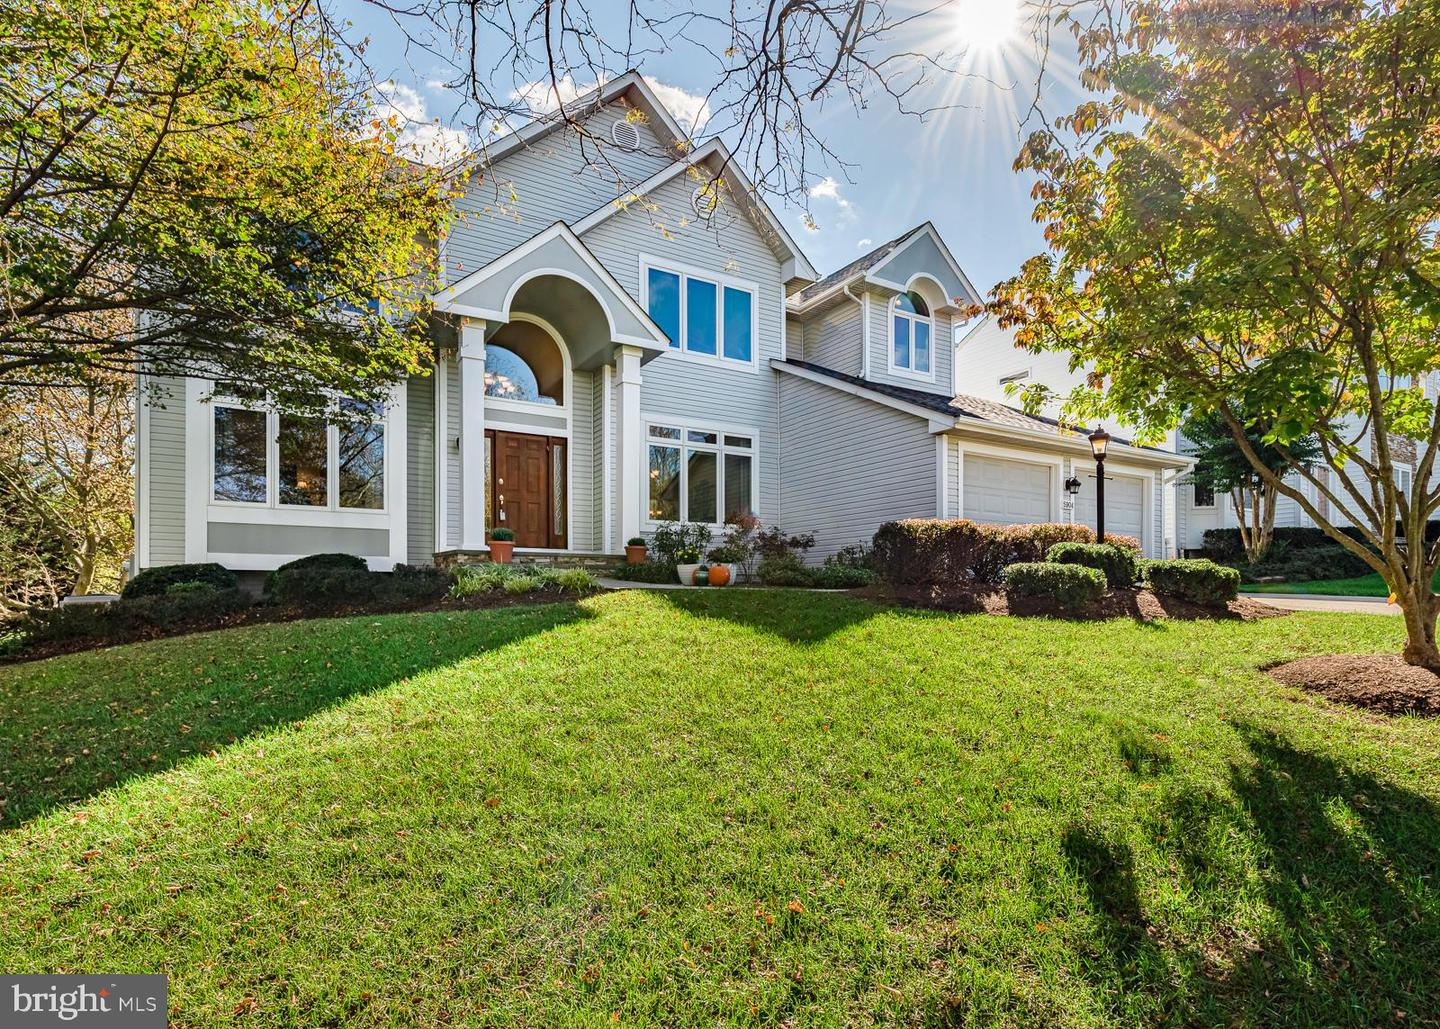 5904 Tall Branches Pass   - Clarksville, Maryland 21029